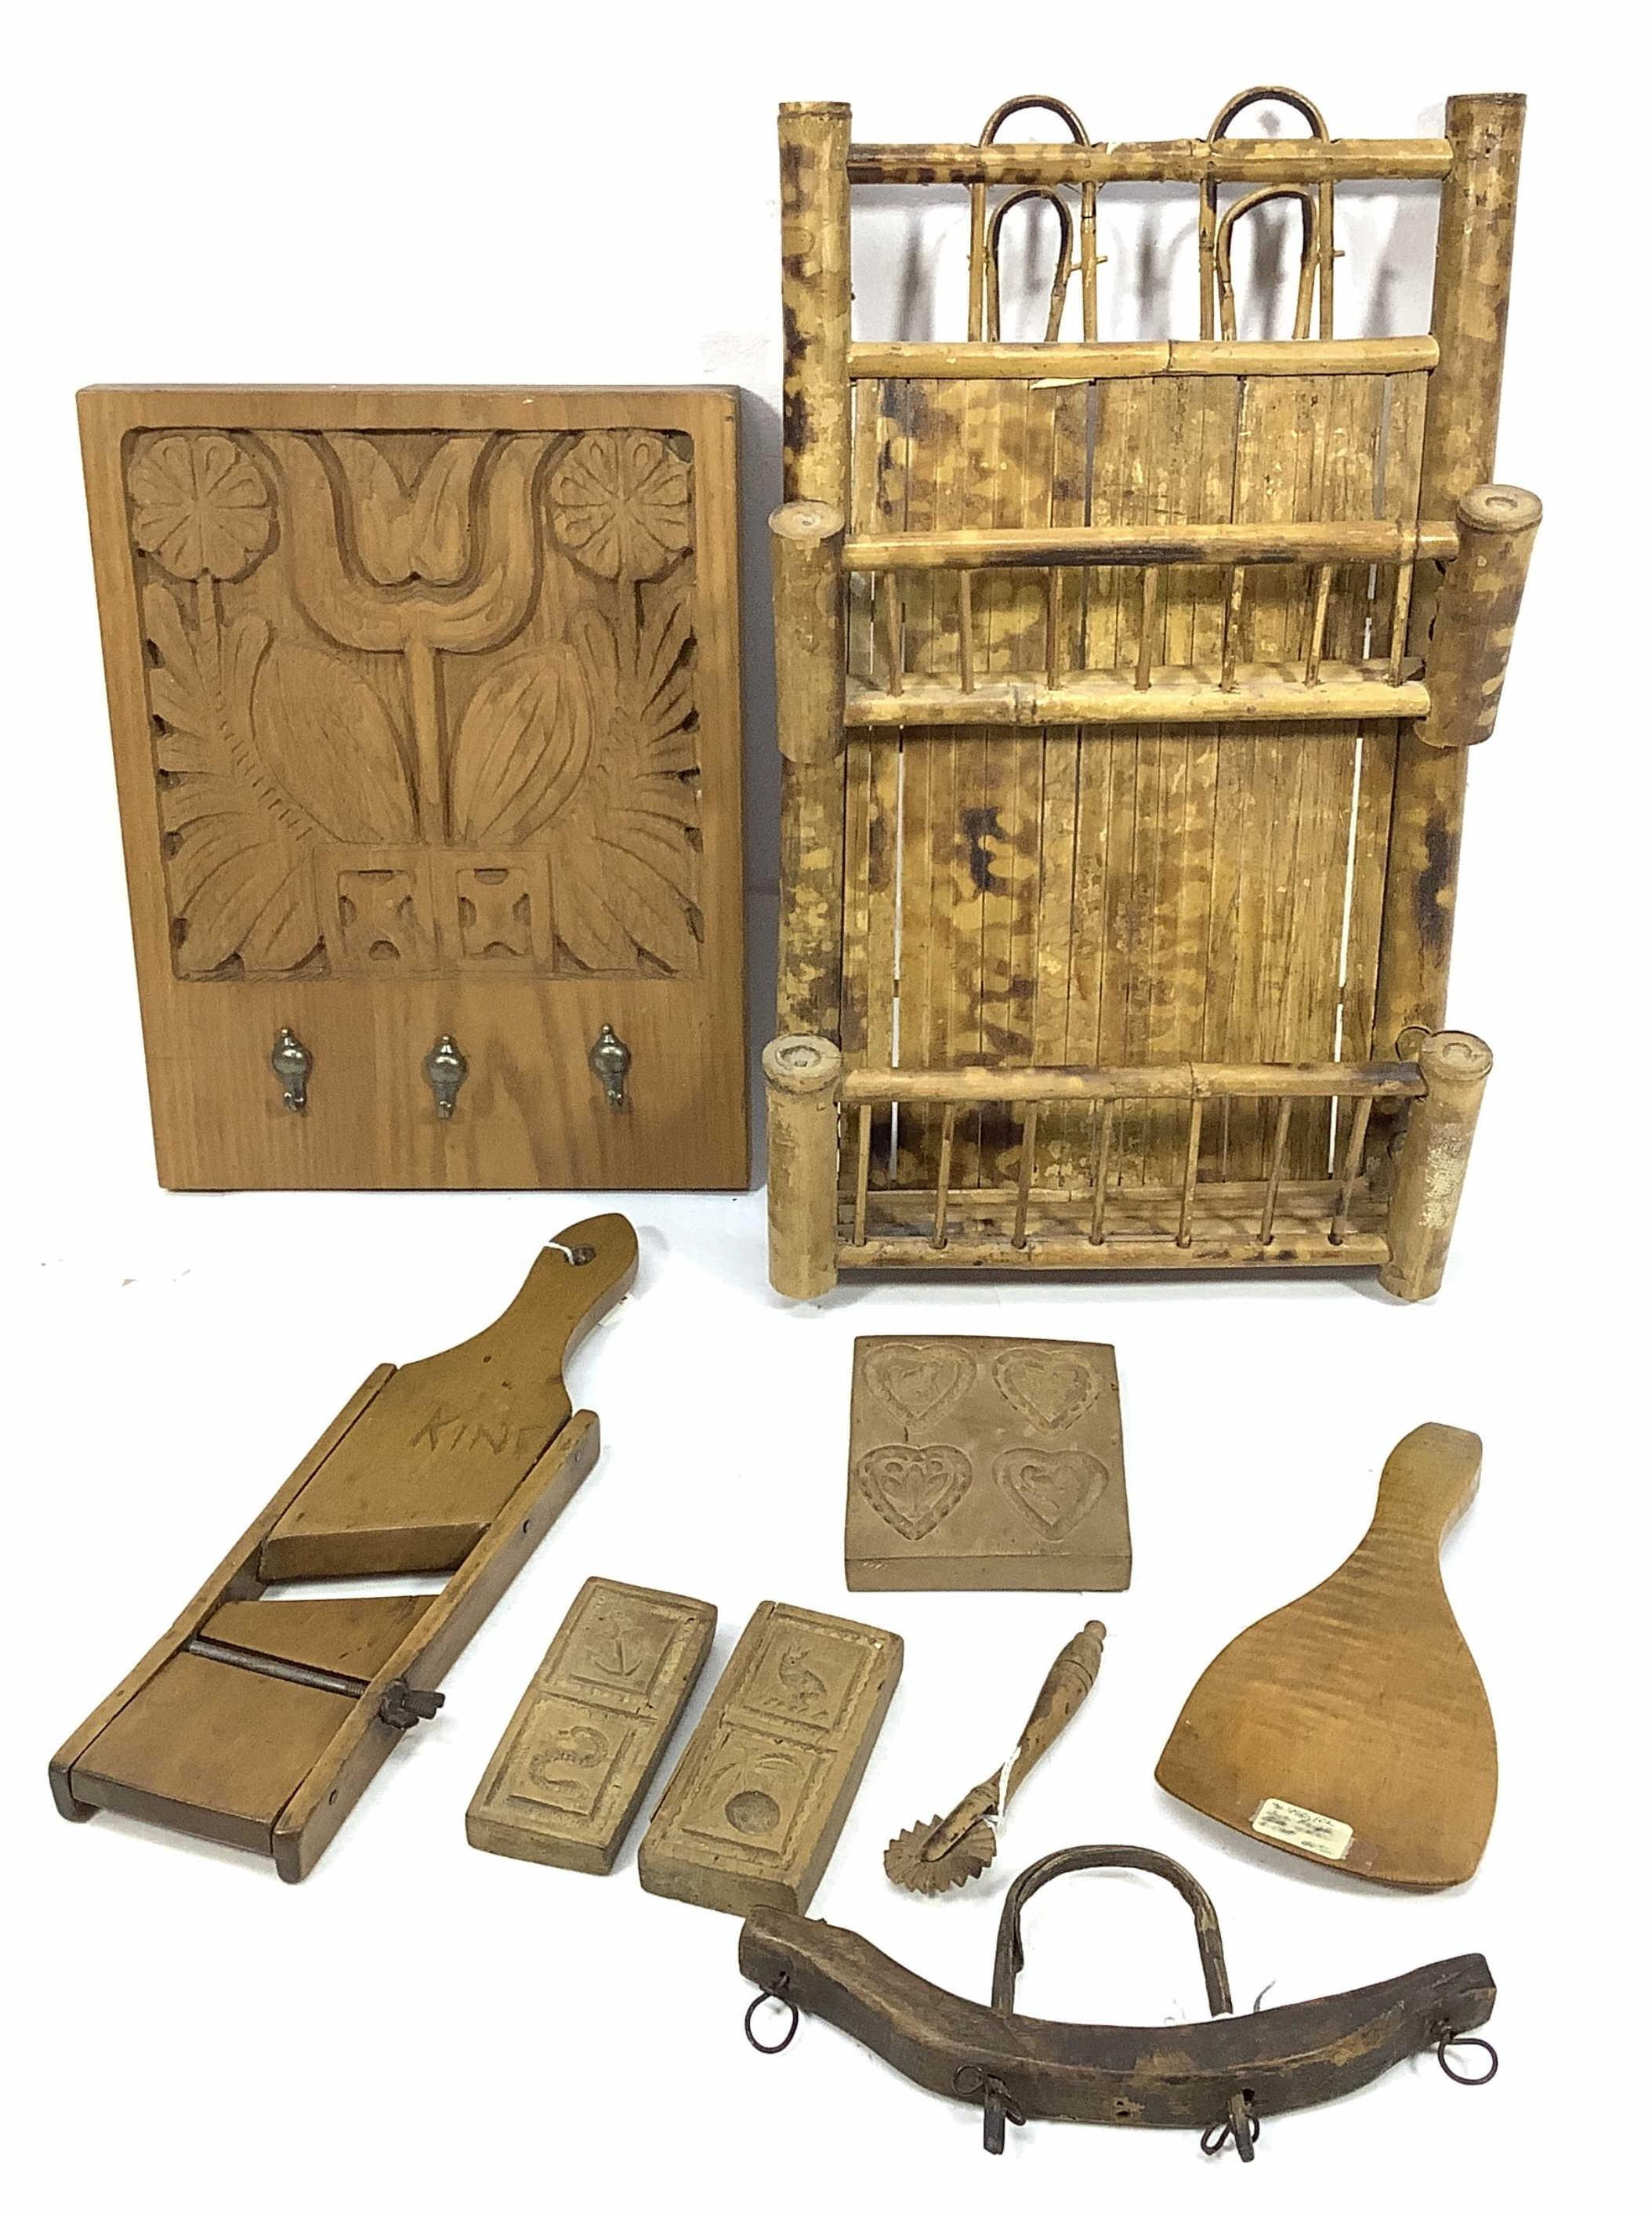 Antique Butter Molds, Primitive Bamboo Mail Rack